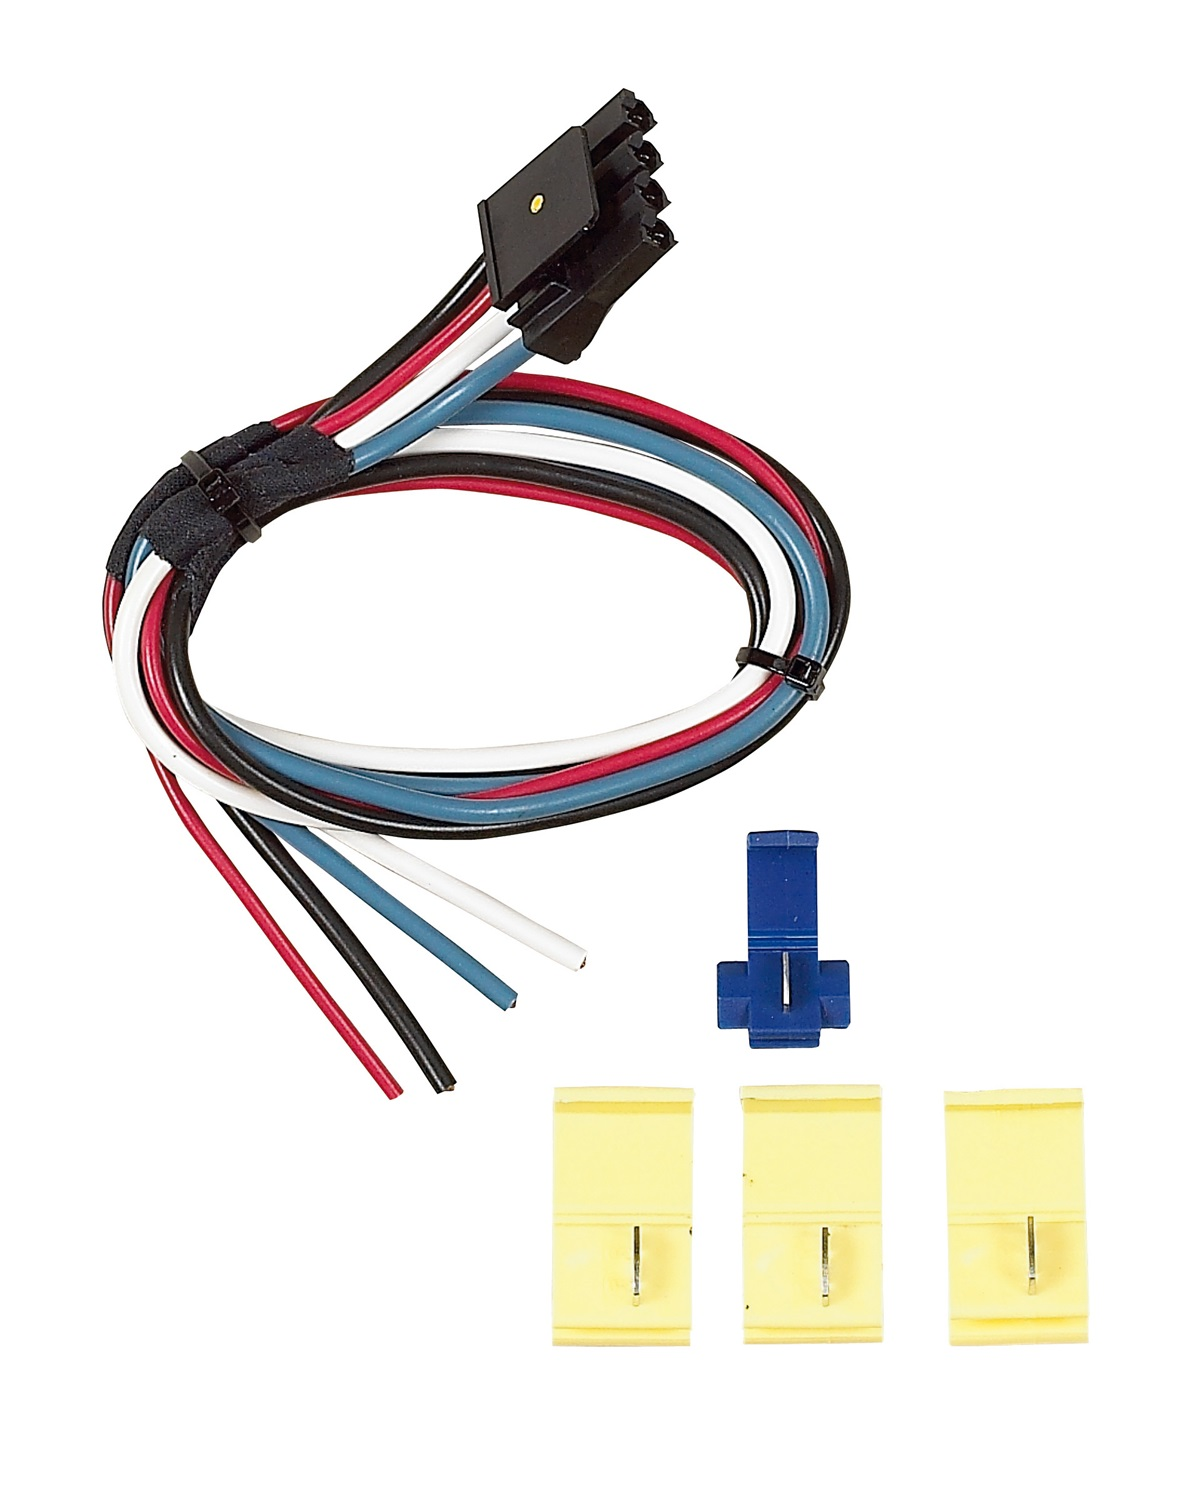 New Hopkins Towing Solution Electronic Brake Control Mounting Kit Impulse Controller Wiring Diagram 079976476850